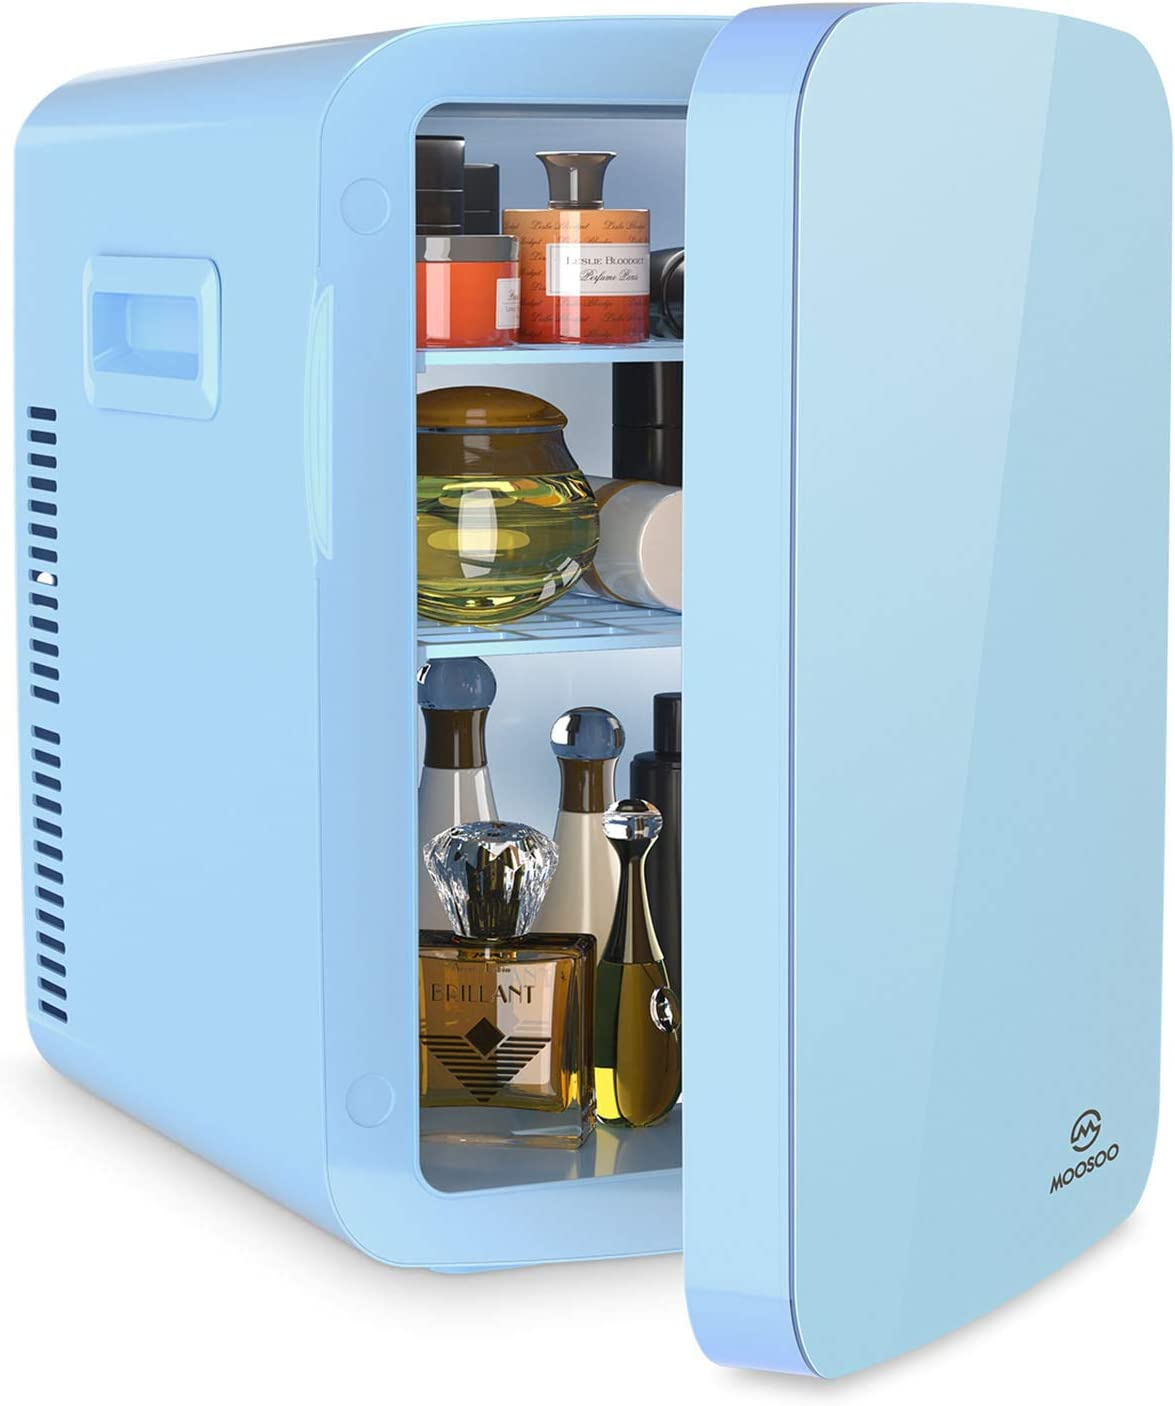 MOOSOO Mini Fridge for Bedroom, 15L Skincare Fridge with AC & DC Power, for Home & Car, Small Fridge for Skin Care, Cosmetics, Snacks and Drinks Storage, Compact Beauty Fridge, Portable Cooler/Warmer